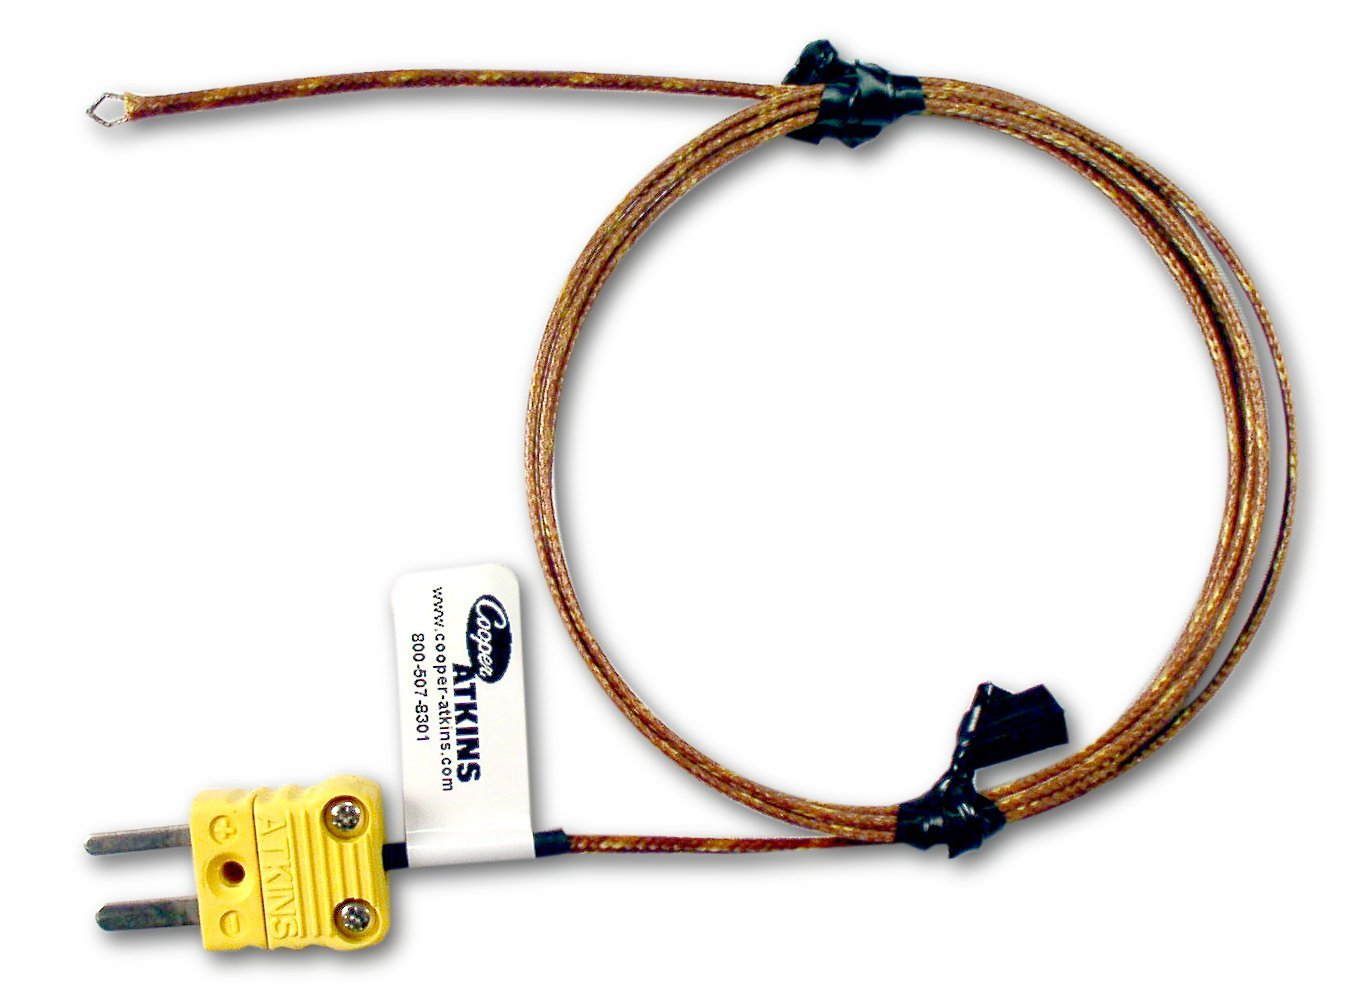 Cooper-Atkins 49138-K Type K Bare Tip Air Thermocouple Probe, 32 to 896 degrees F Temperature Range